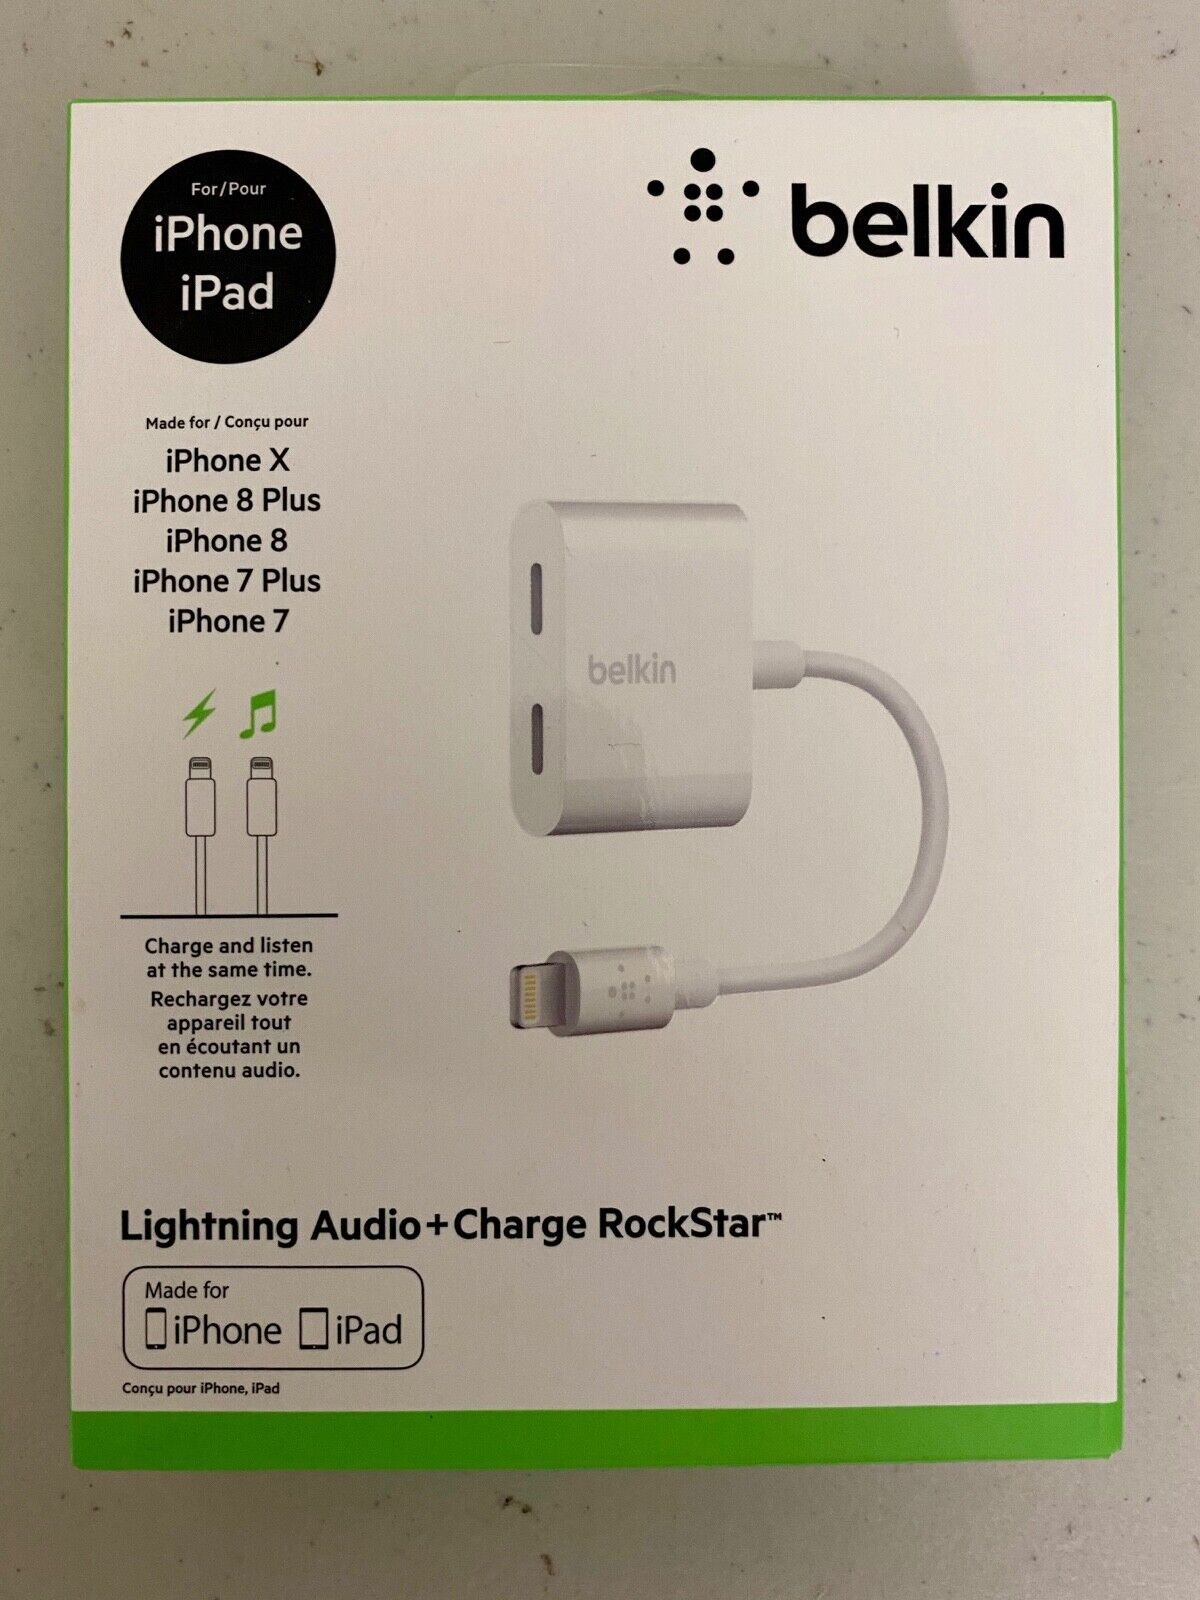 Belkin Lightning Audio ChargeRockstar Adapter for iPhone iPa